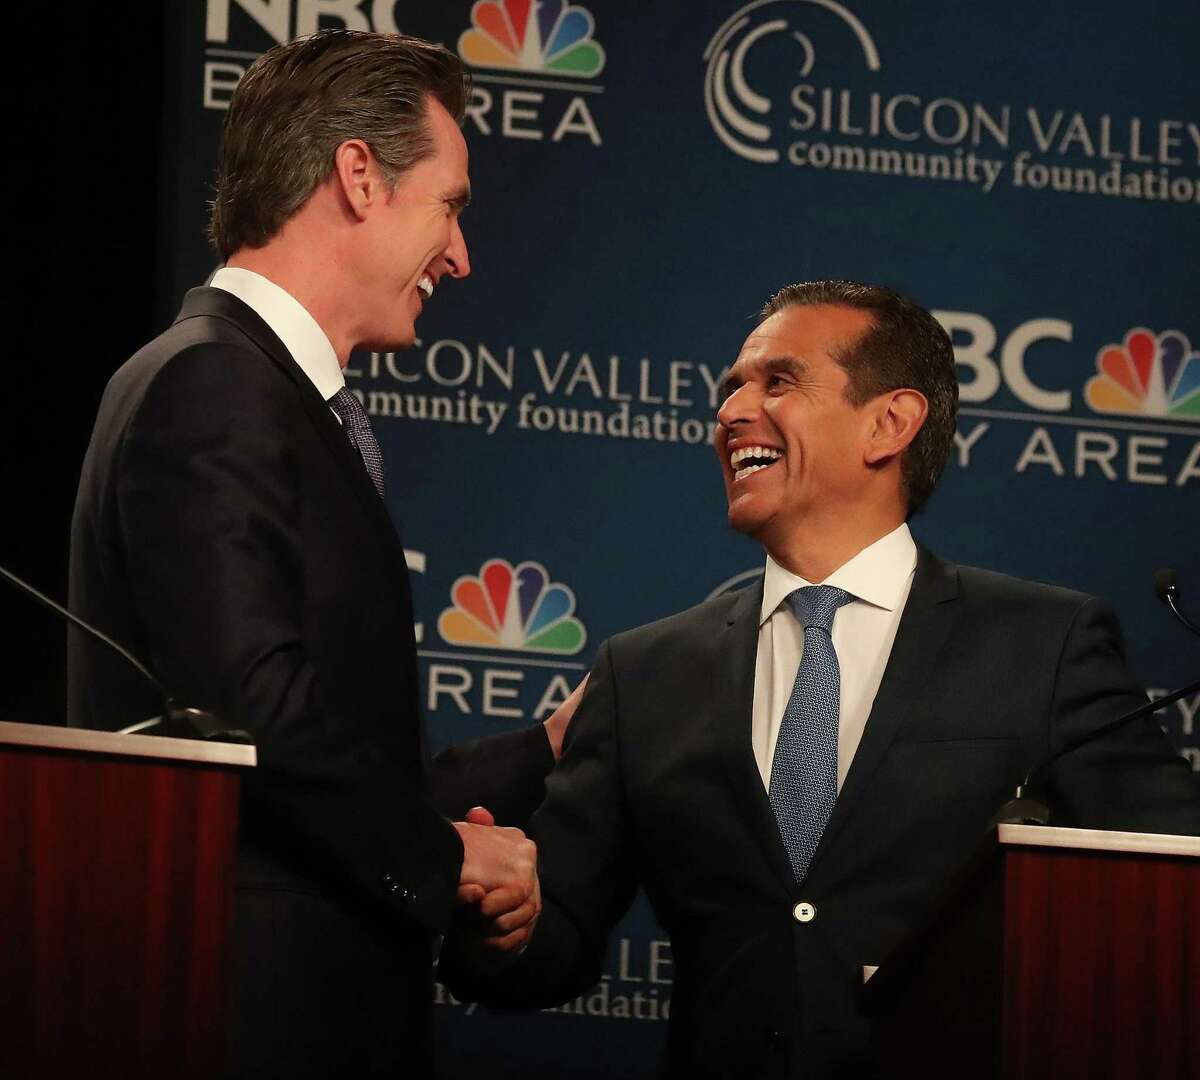 """Democratic candidates Gavin Newsom, left, and Antonio Villaraigosa, right, shake hands after the """"Decision 2018: The Race for Governor"""" debate at the California Theatre on Tuesday, May 8, 2018, in San Jose, Calif. (Aric Crabb/Bay Area News Group)"""